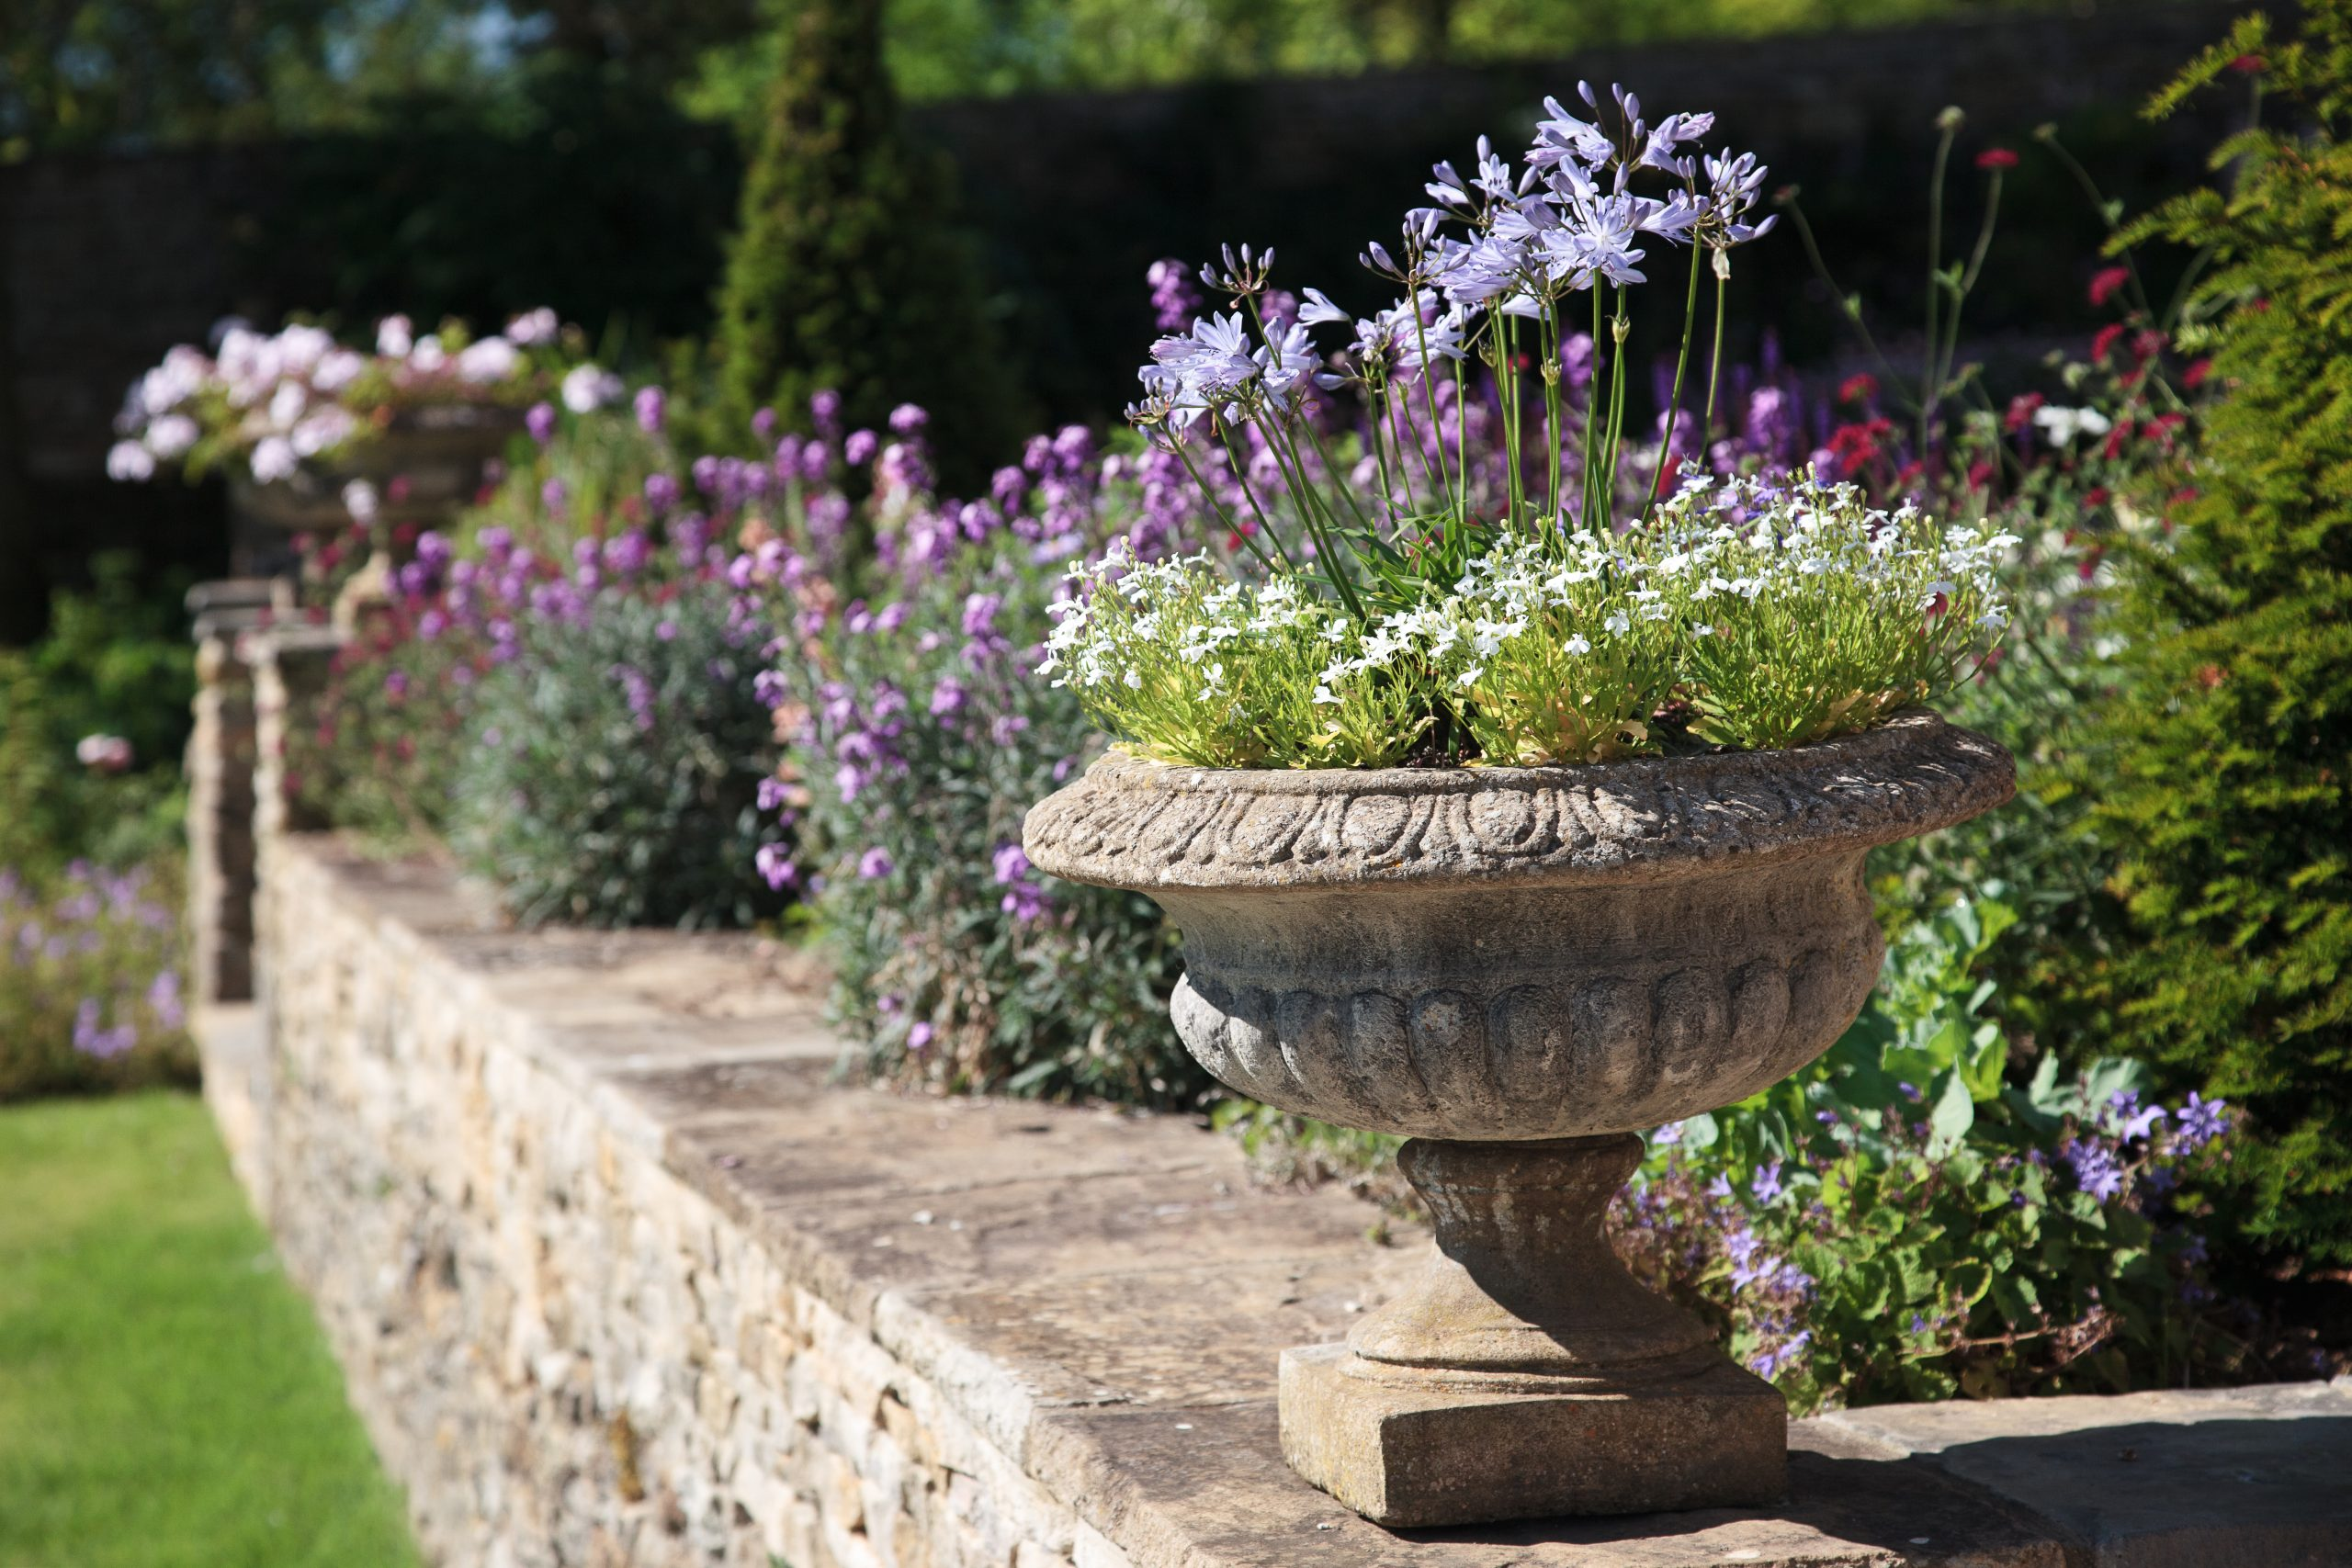 Cotswold stone wall and flower pots